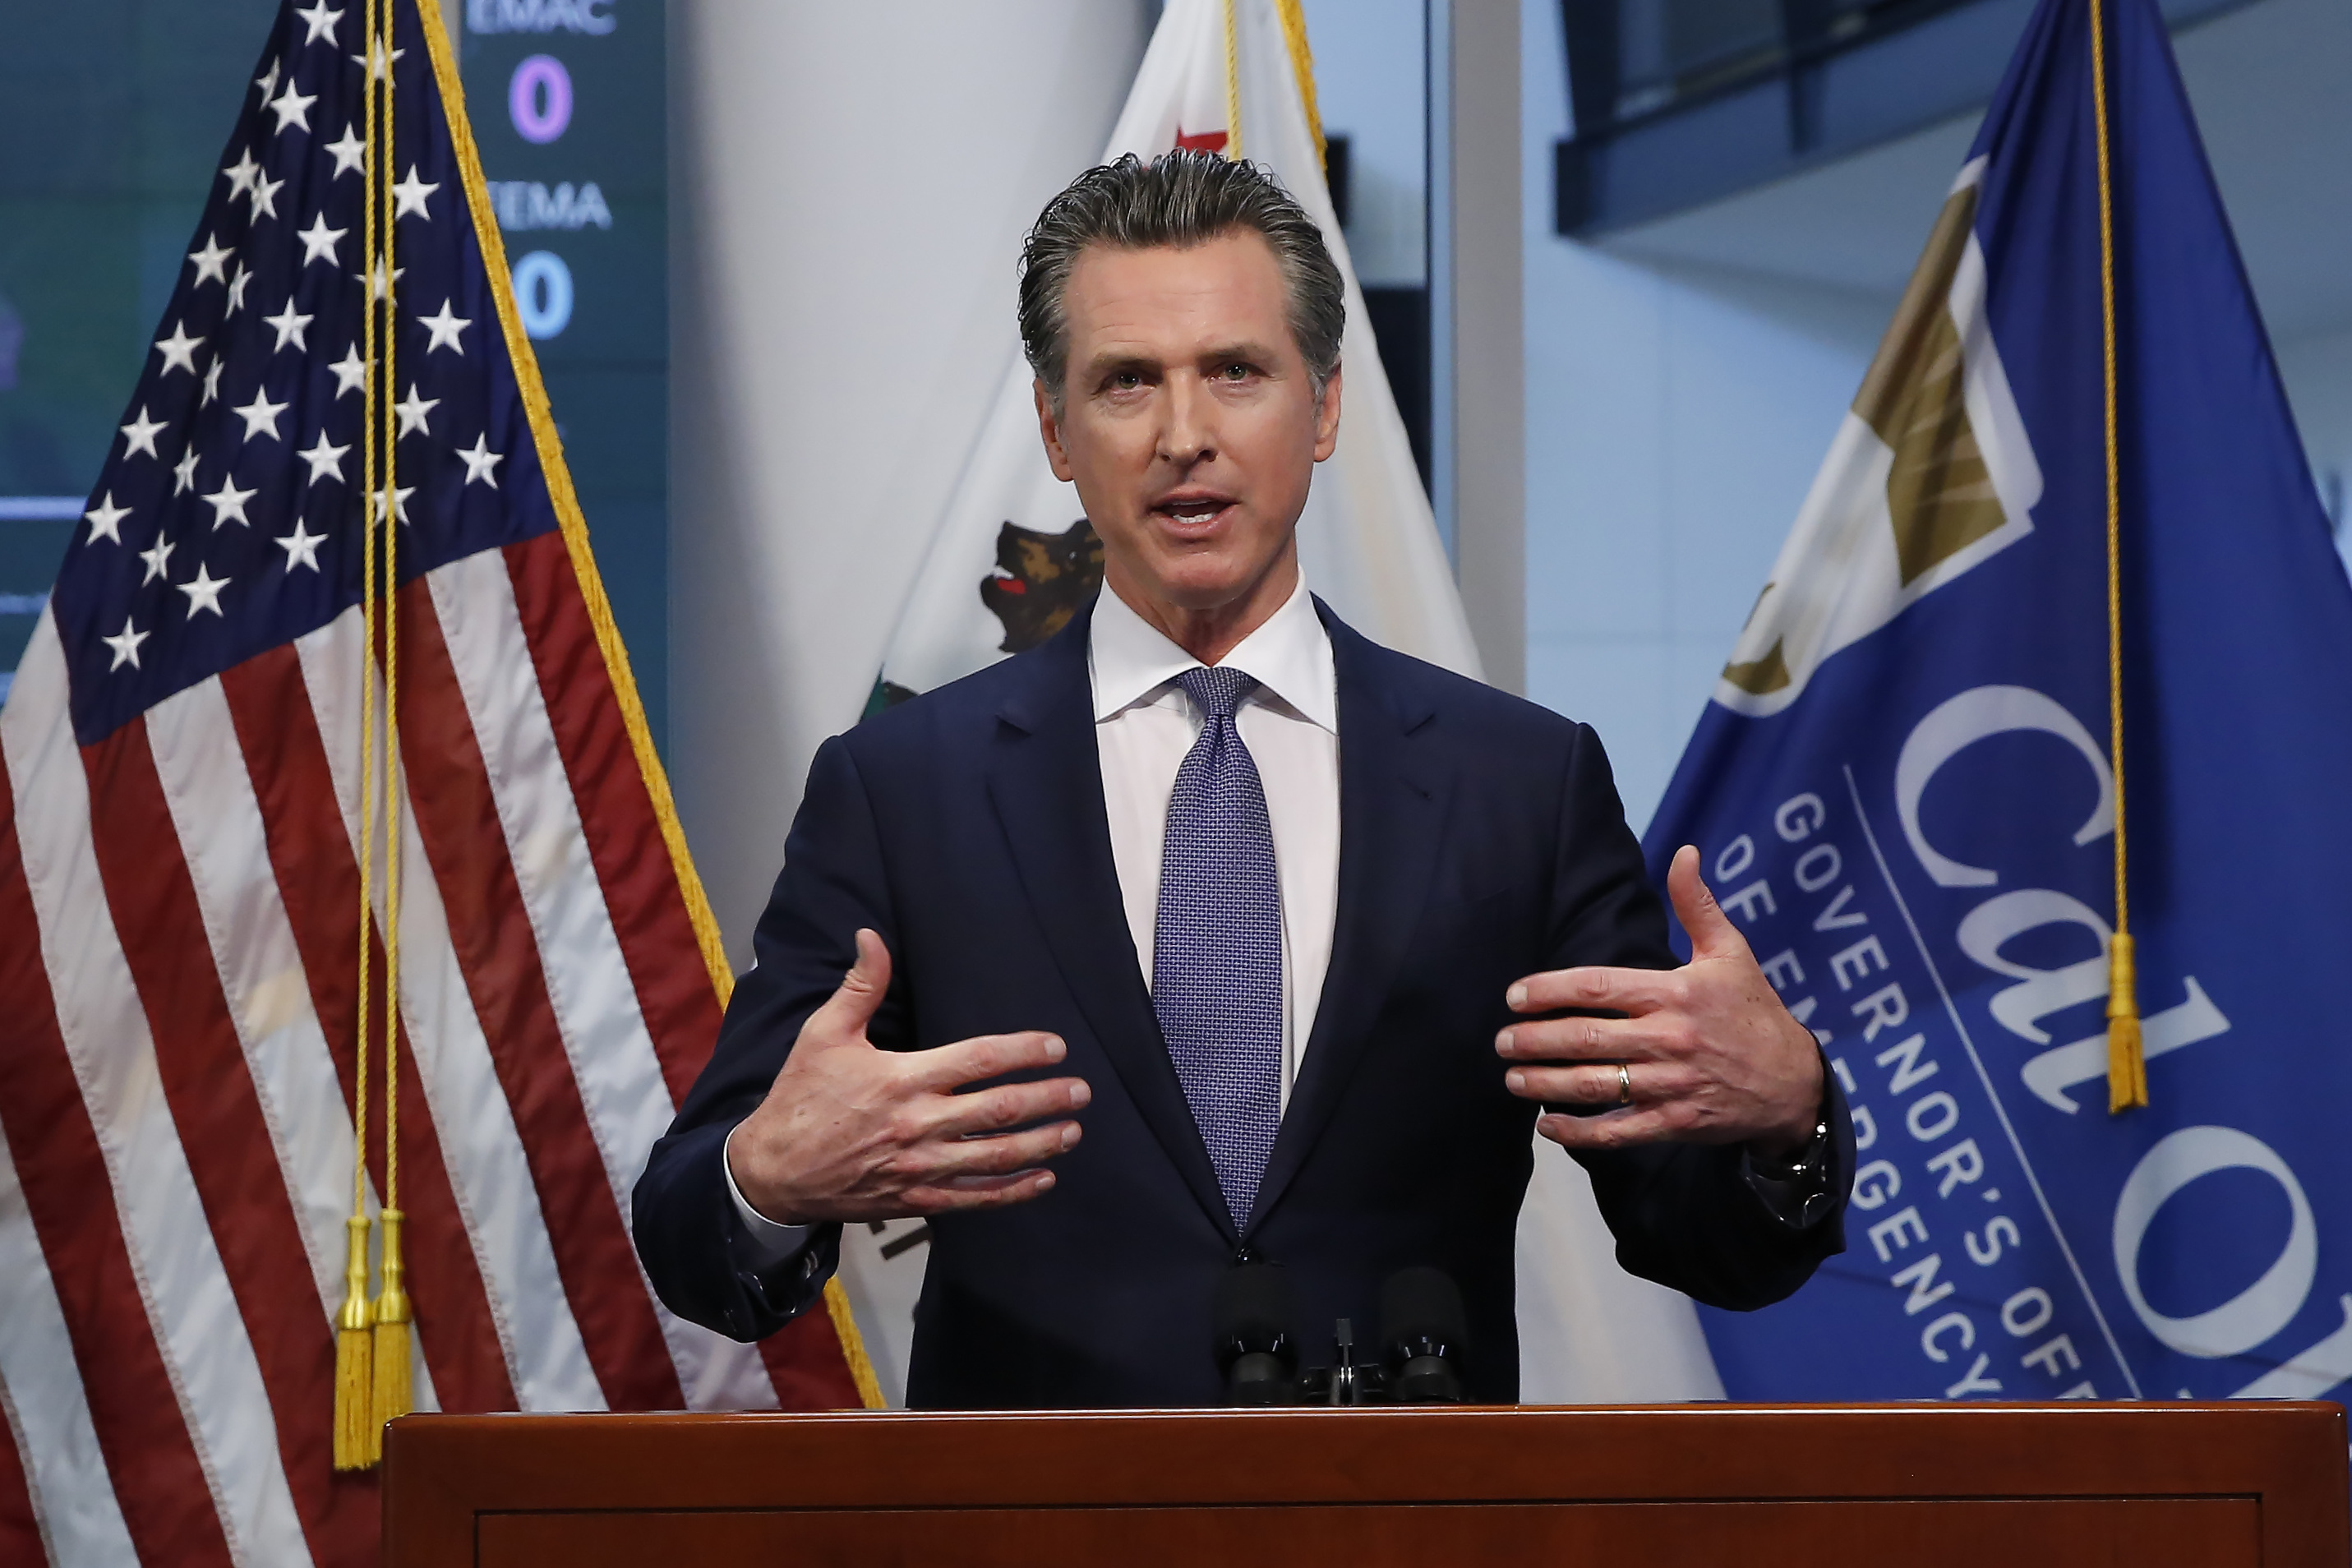 Gov. Gavin Newsom updates the state's response to the coronavirus at the Governor's Office of Emergency Services in Rancho Cordova, Calif., on March 23, 2020.